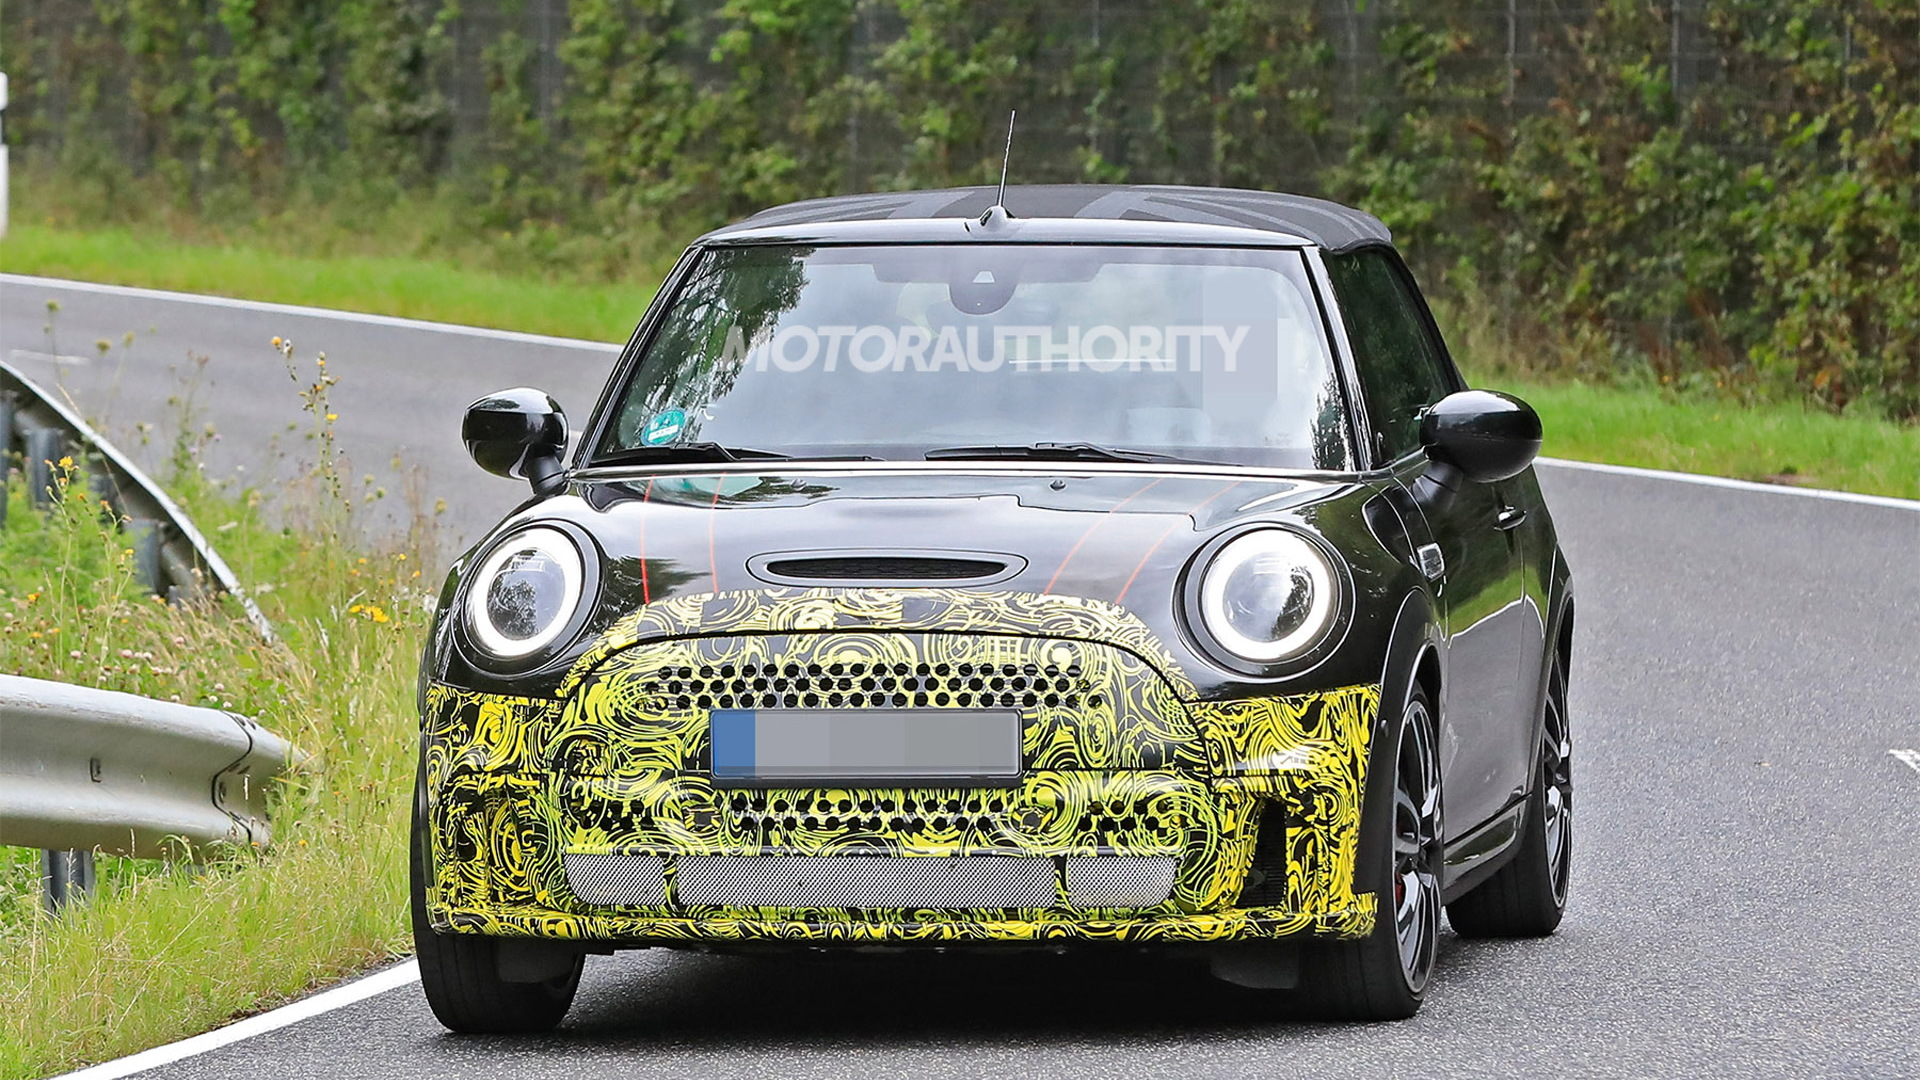 2022 Mini Convertible facelift spy shots - Photo credit: S. Baldauf/SB-Medien